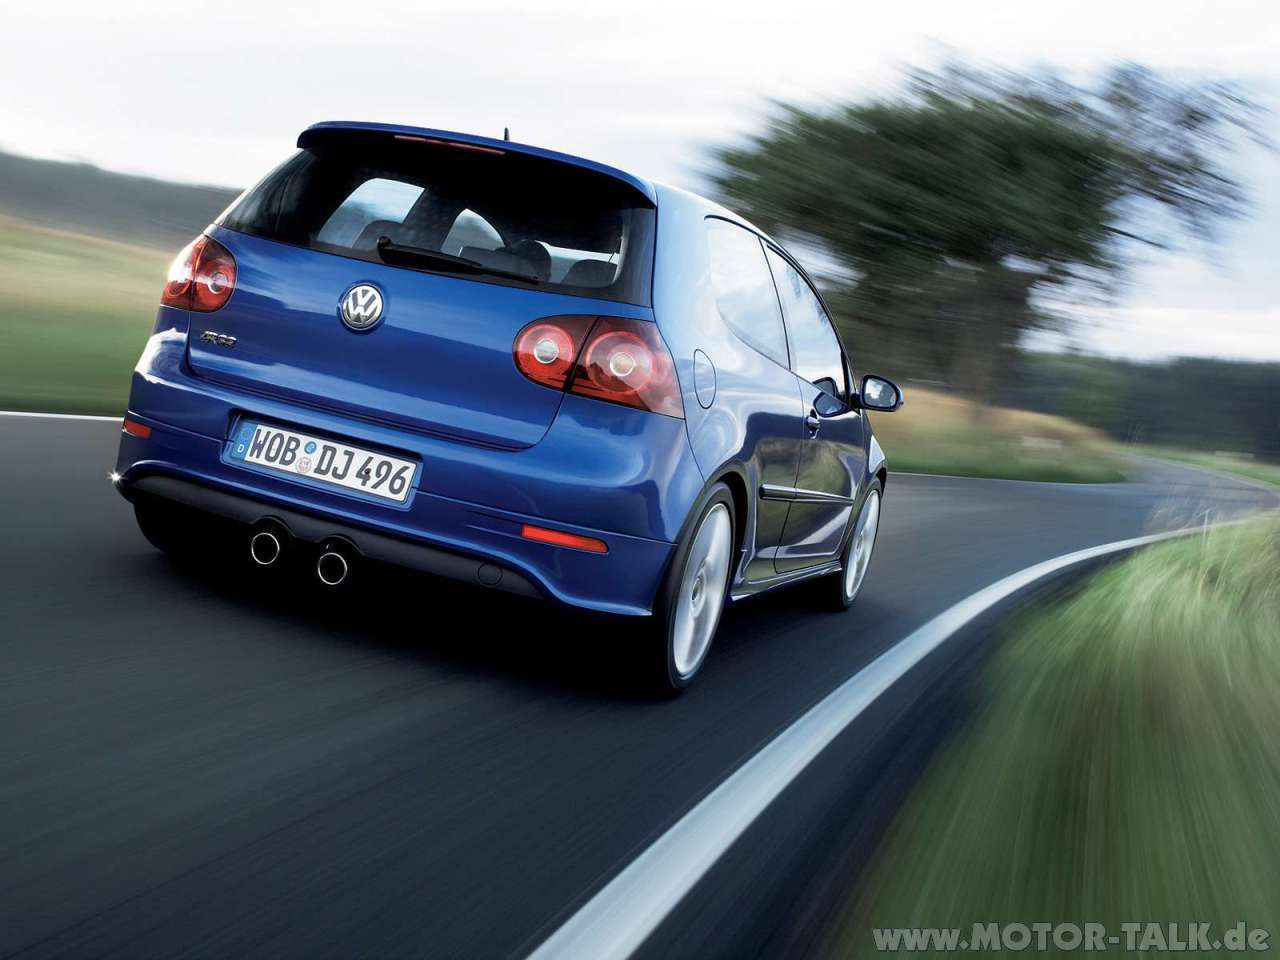 volkswagen golf r32 2005 1600x1200 wallpaper 09 us golf. Black Bedroom Furniture Sets. Home Design Ideas